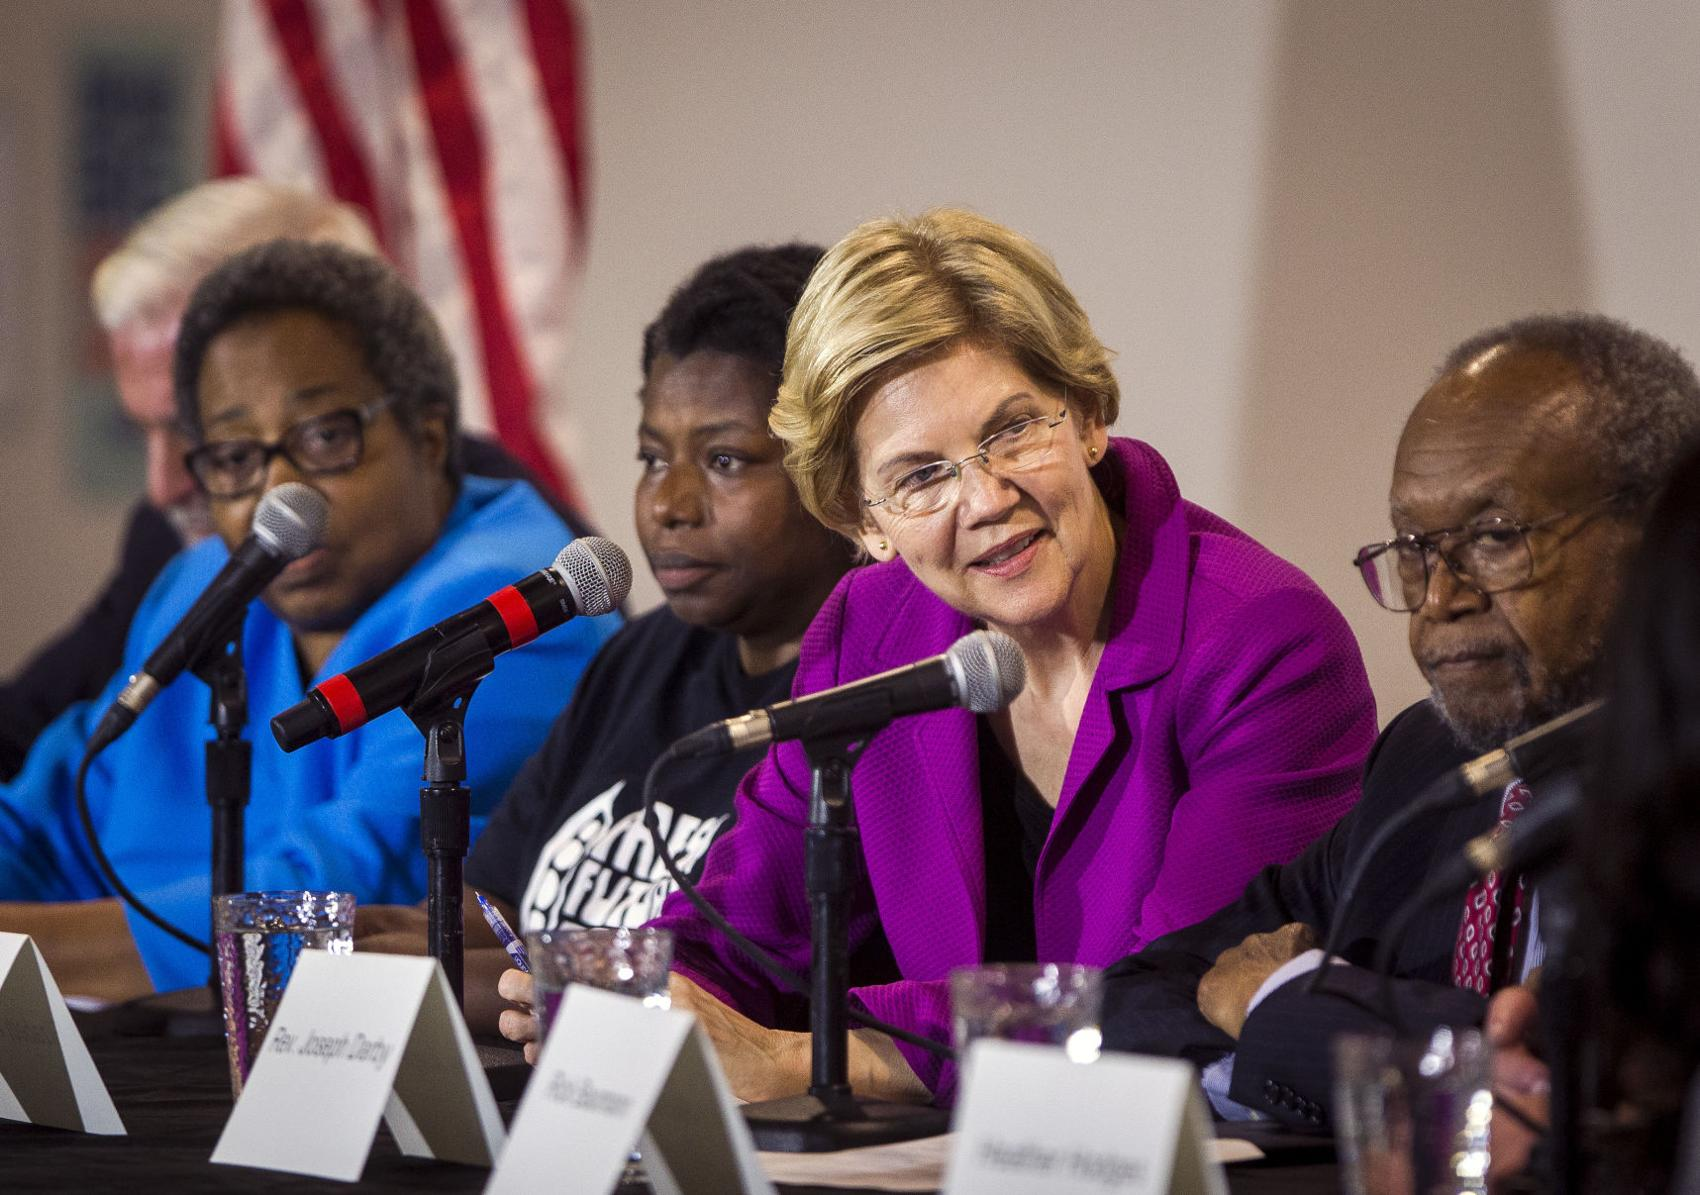 POST AND COURIER – Elizabeth Warren, Pete Buttigieg Surge